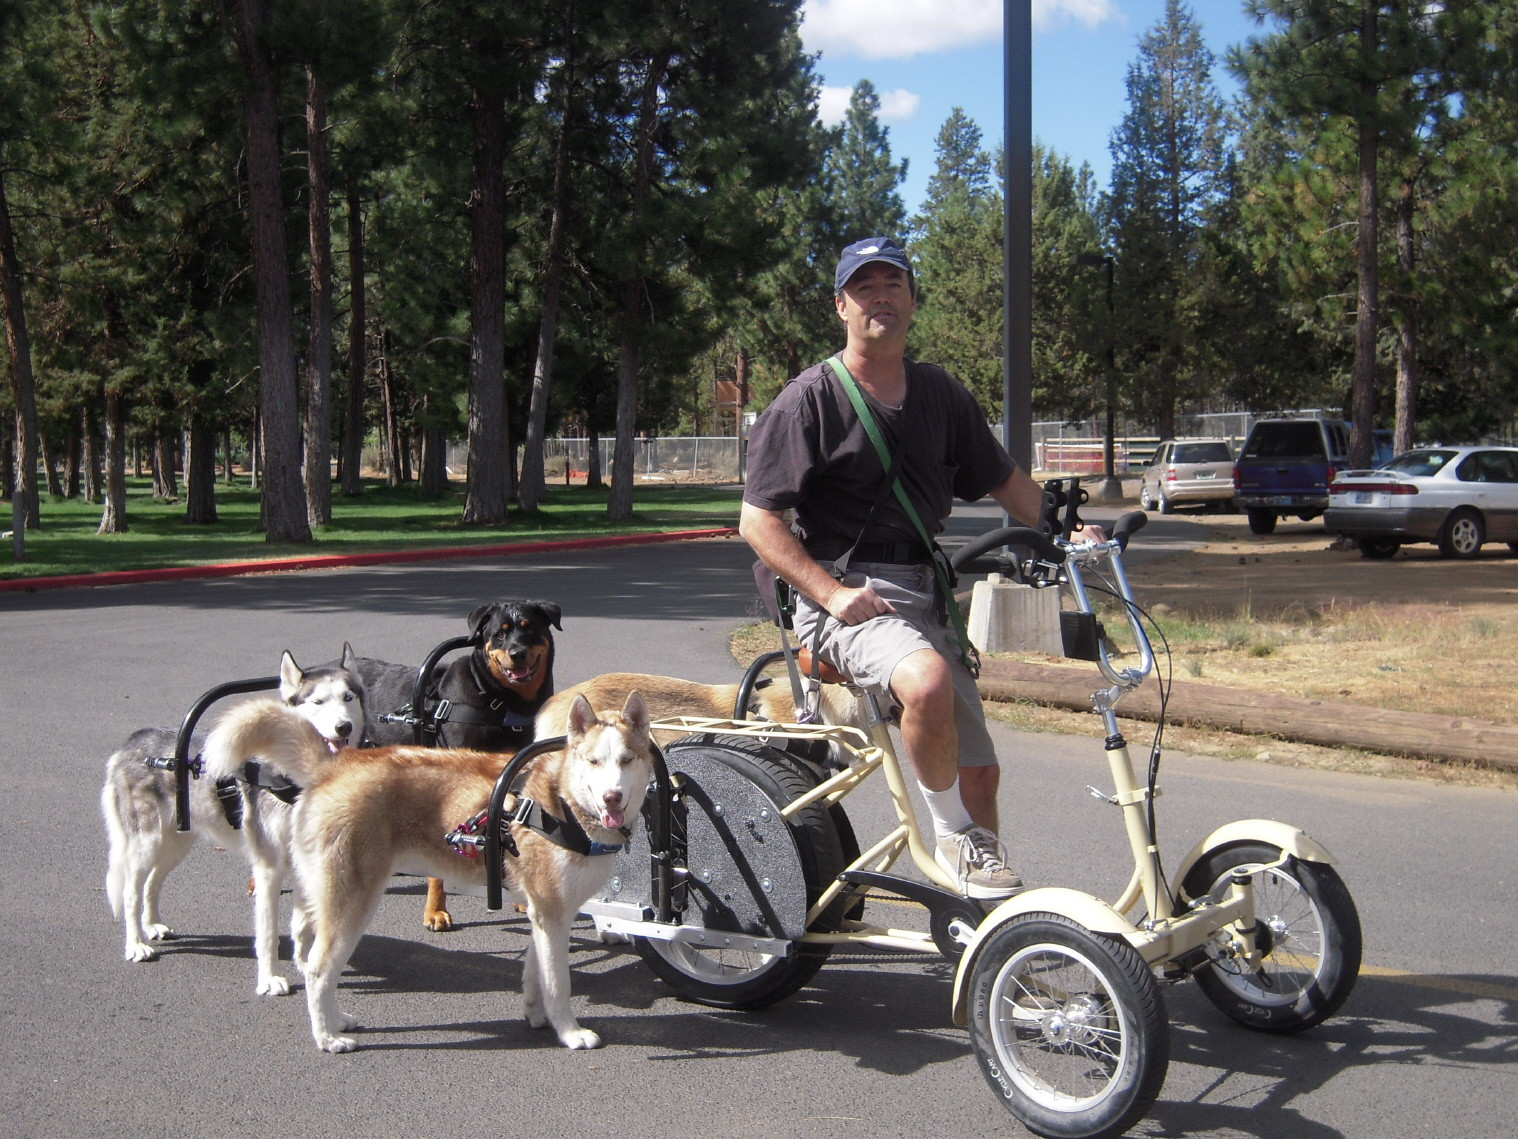 Dogpowered Scooter | A Great Way To Exercise Your High Energy Dog